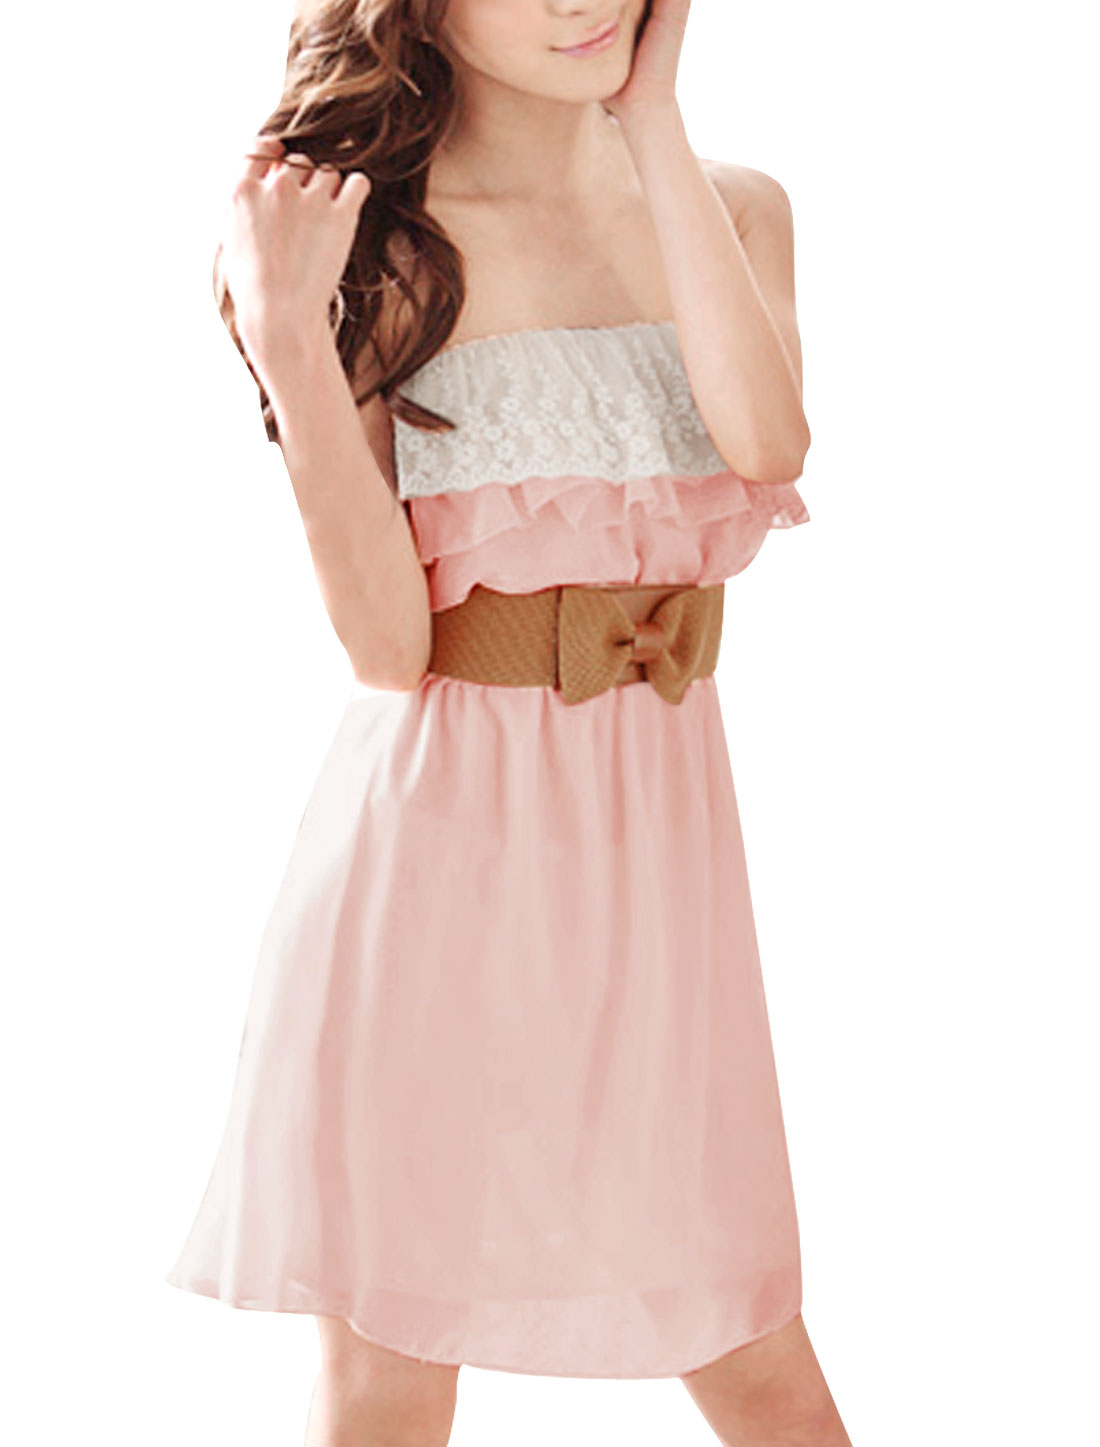 Women Pink Chiffon Lined Tube Dress w Elastic Bowtie Decor Belt XL